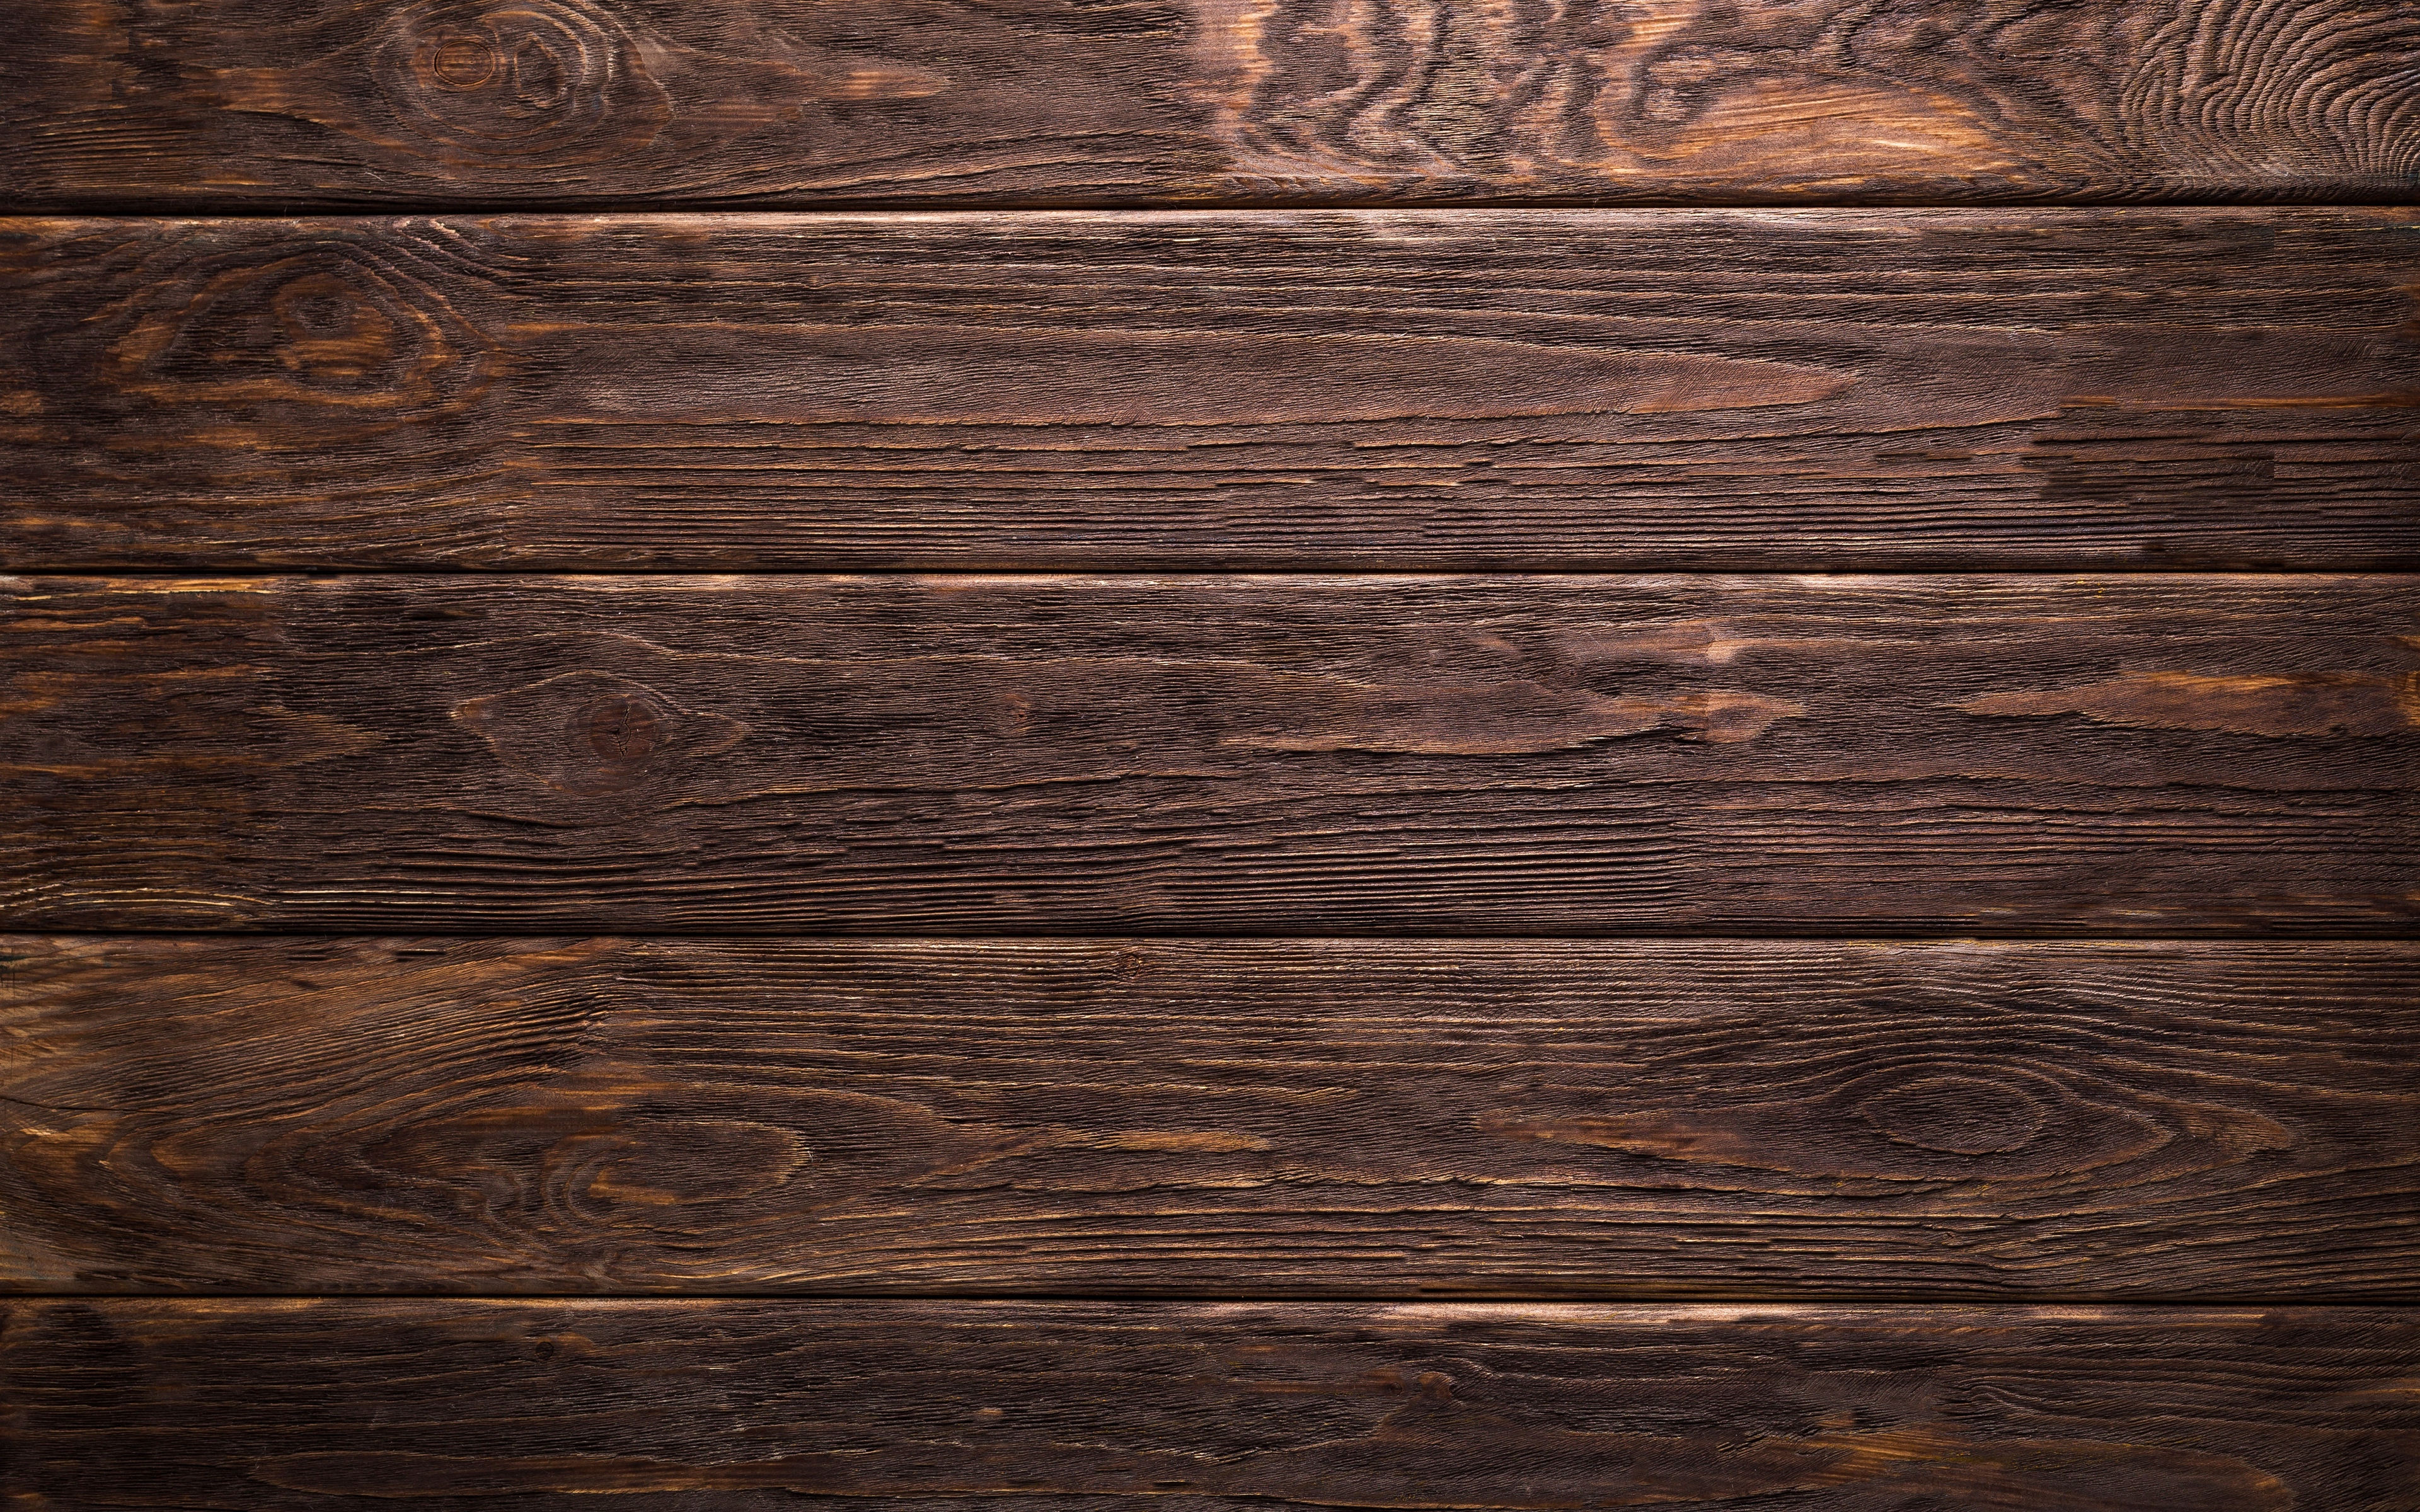 Wallpaper Wood Surface Texture Boards Wooden Background 3840x2400 Wallpaper Teahub Io